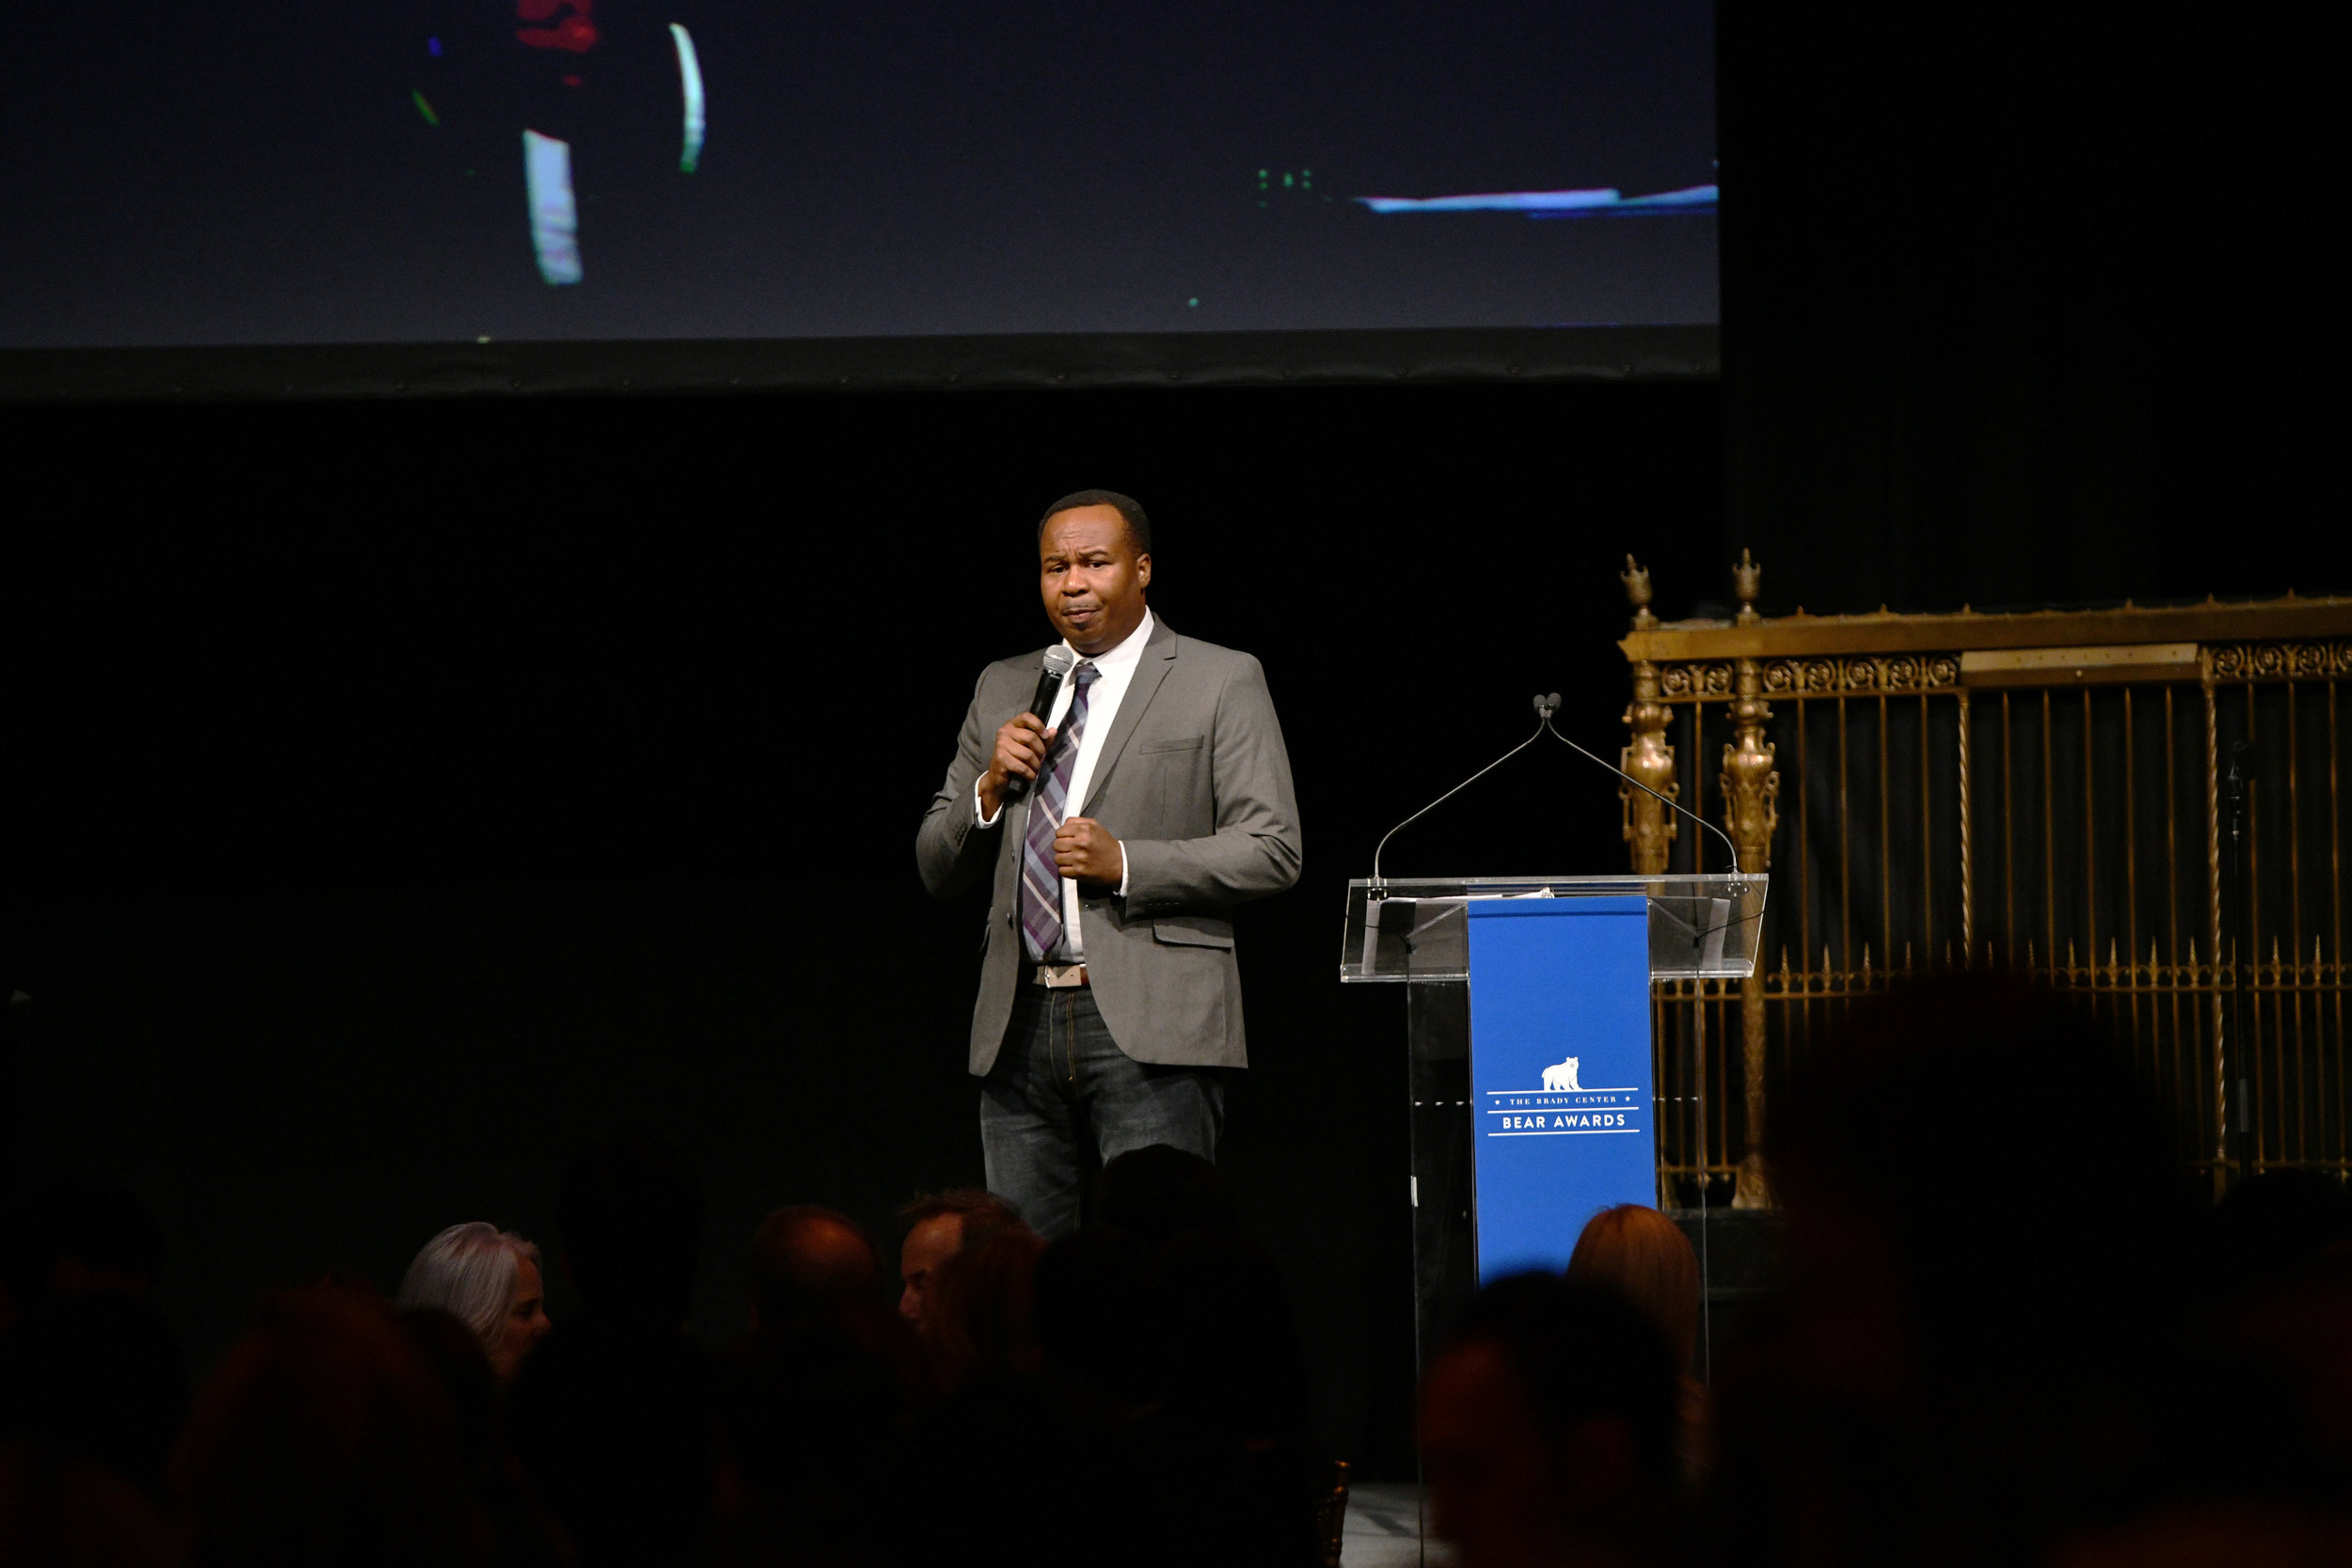 Roy Wood Jr. attends Brady Center's 2018 Bear Awards Honoring Real Life Heroes Helping to Prevent Gun Violence